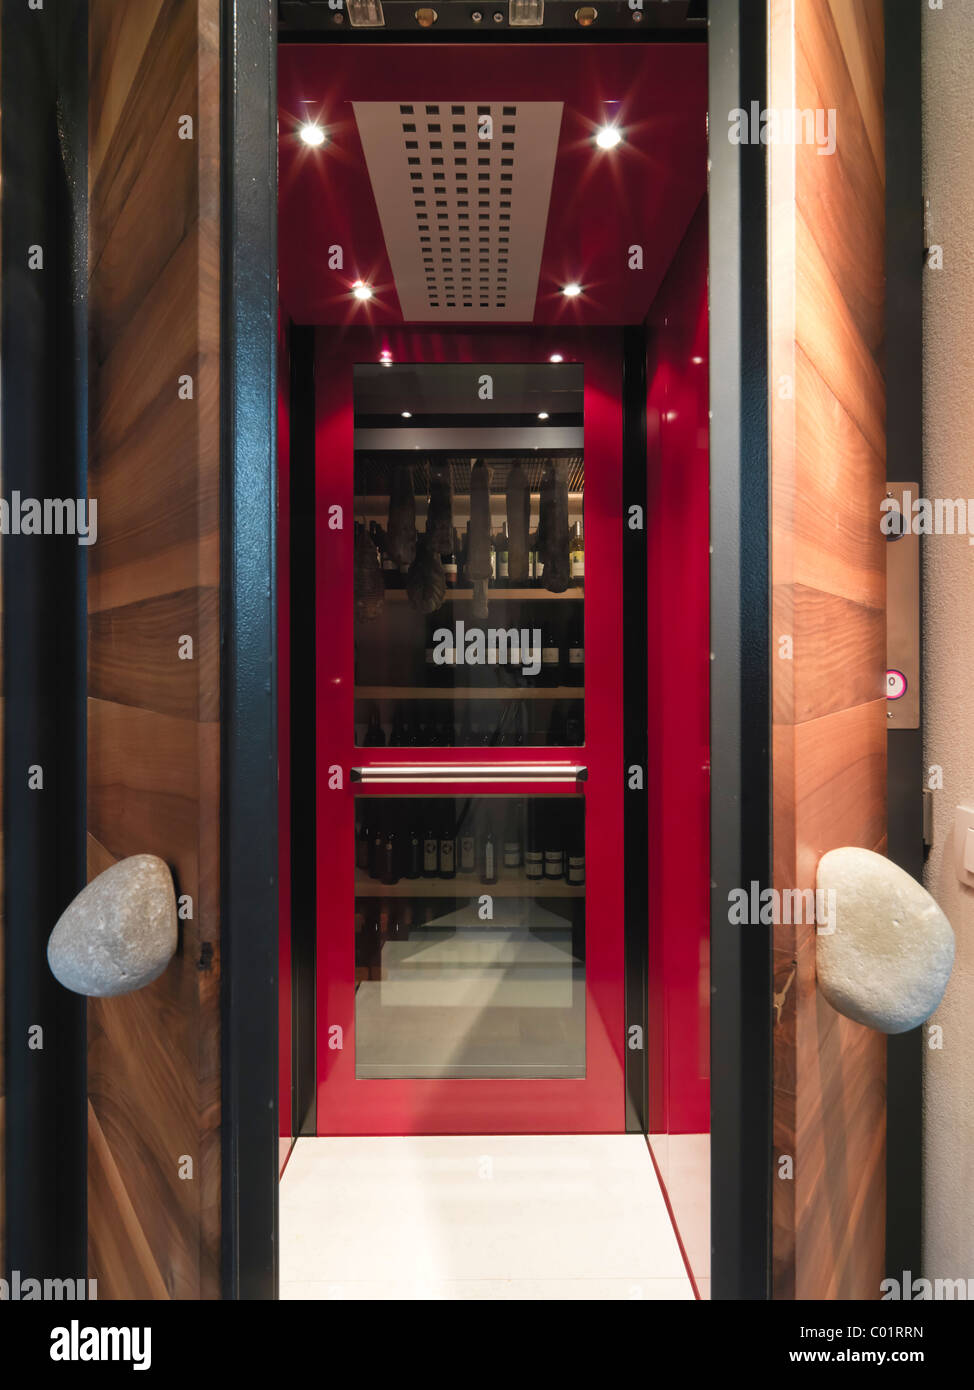 modern red elevator with glass wall overlooking the winery - Stock Image